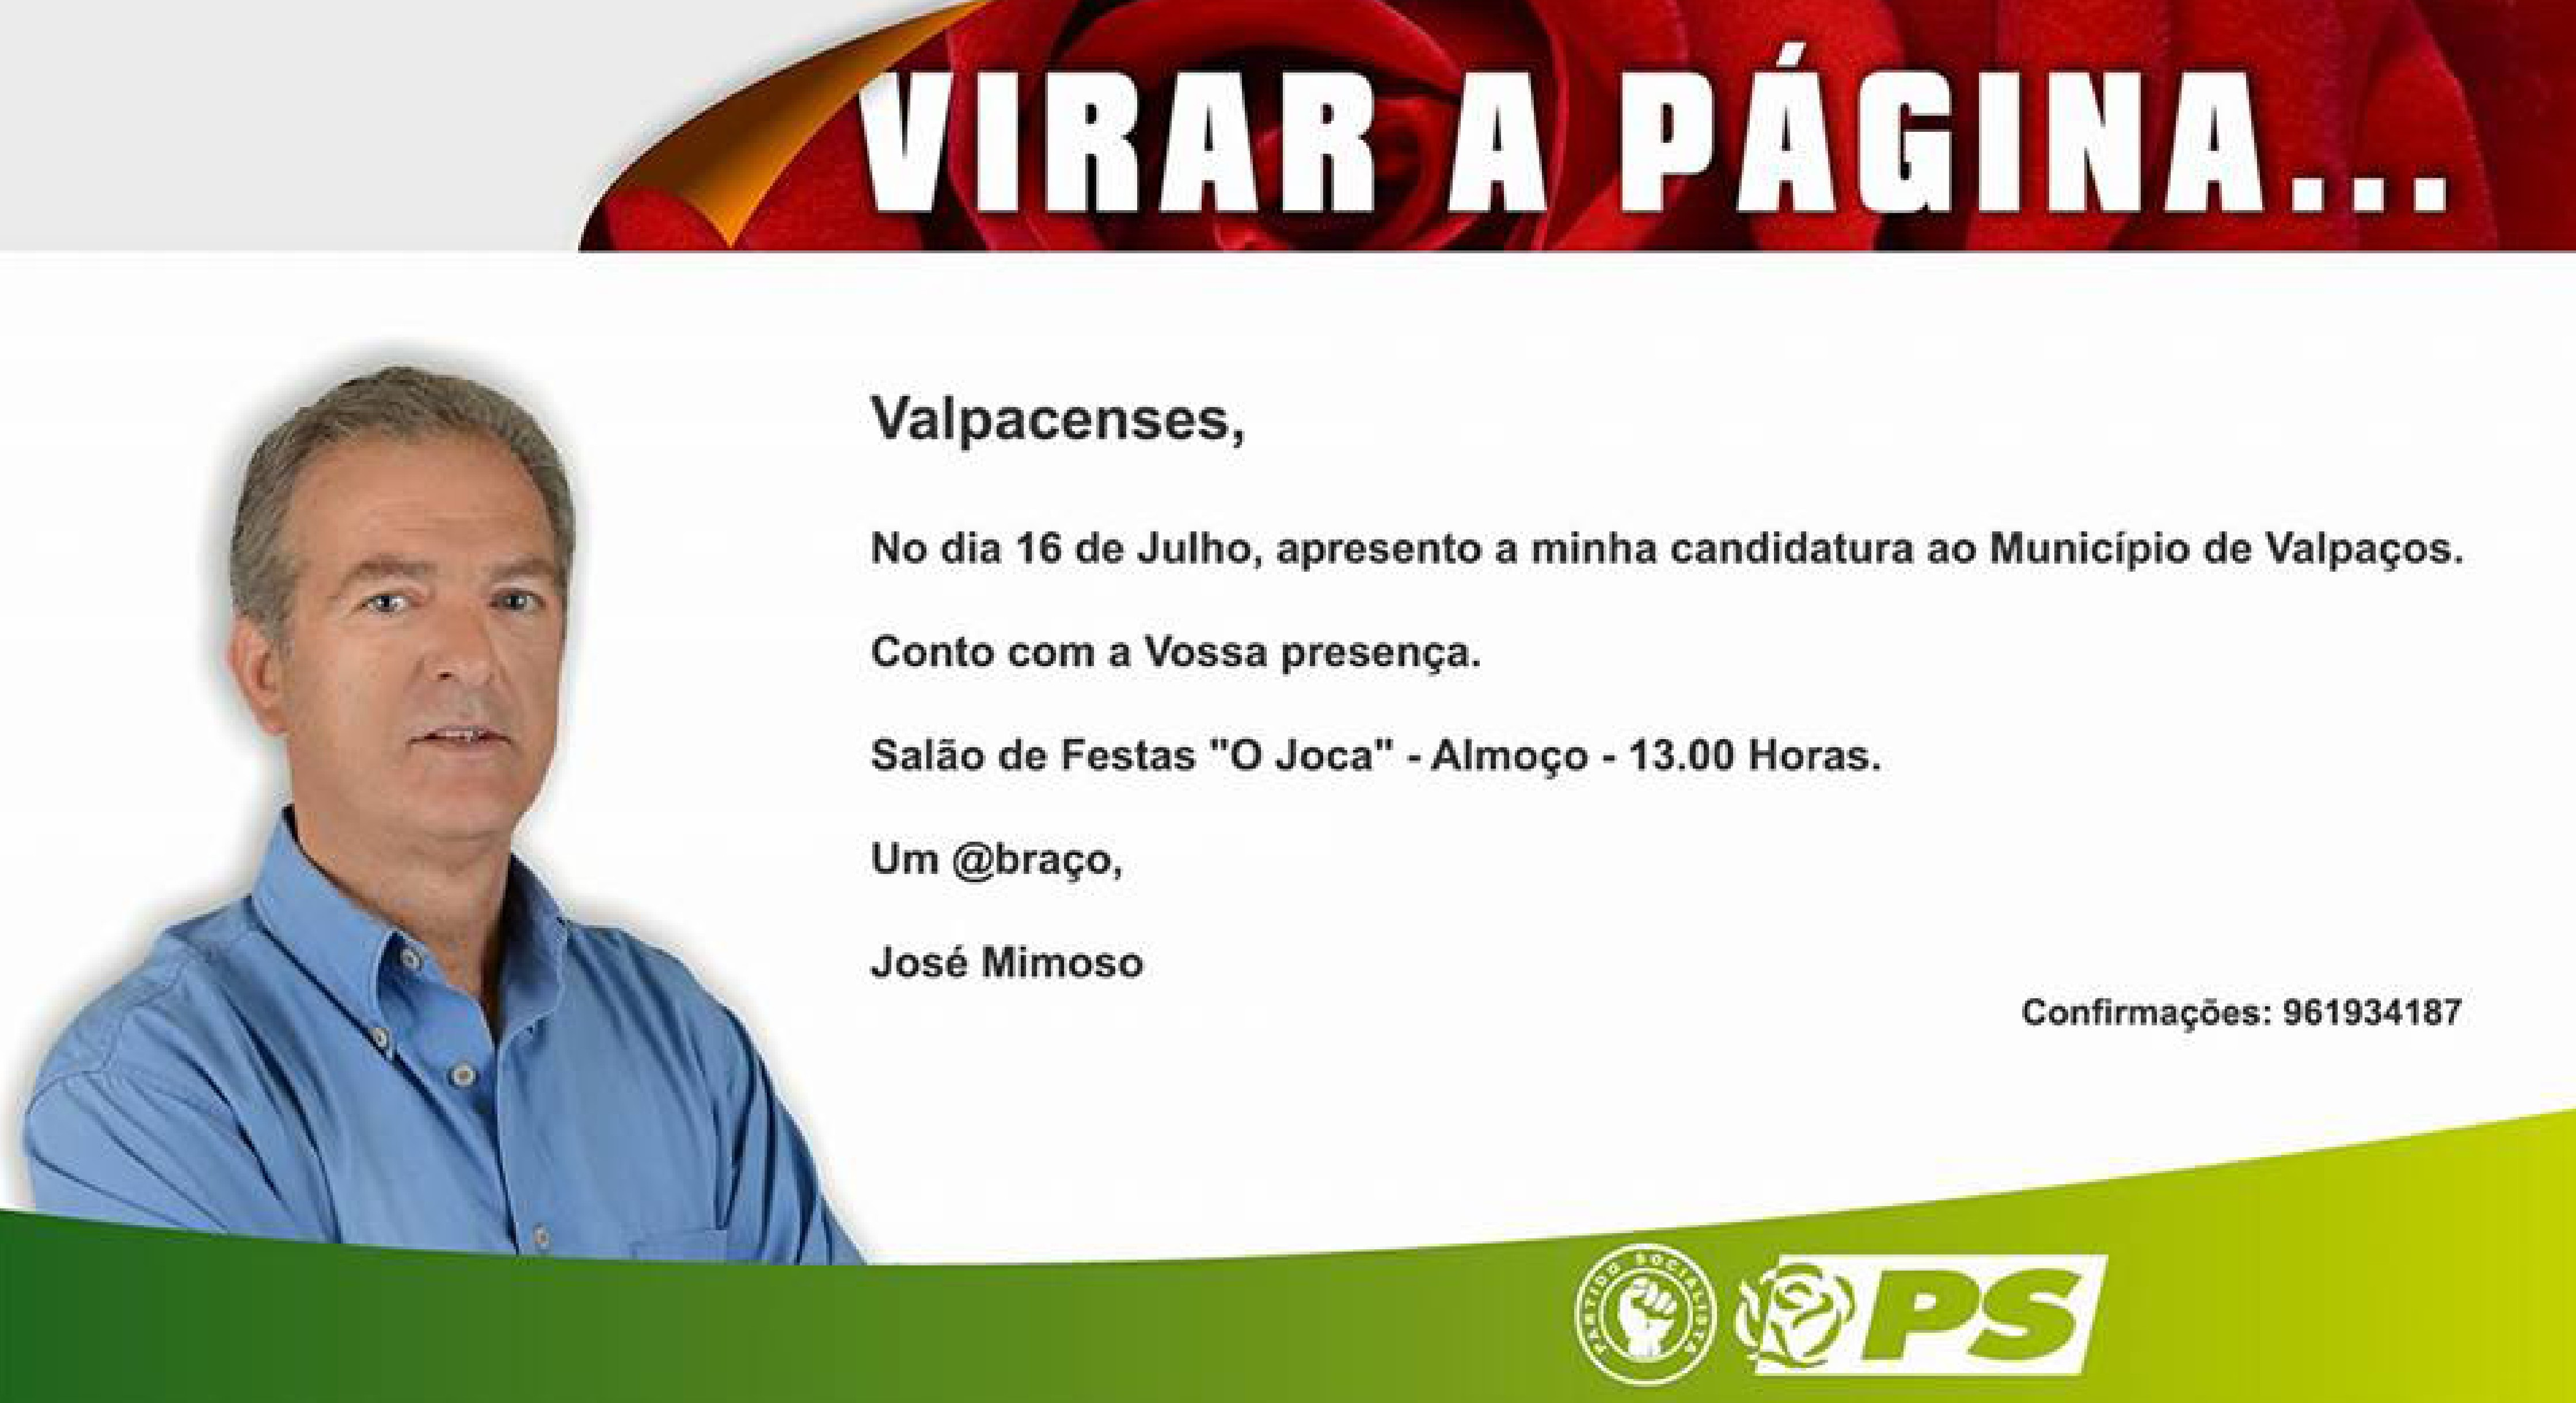 PS VALPACOS